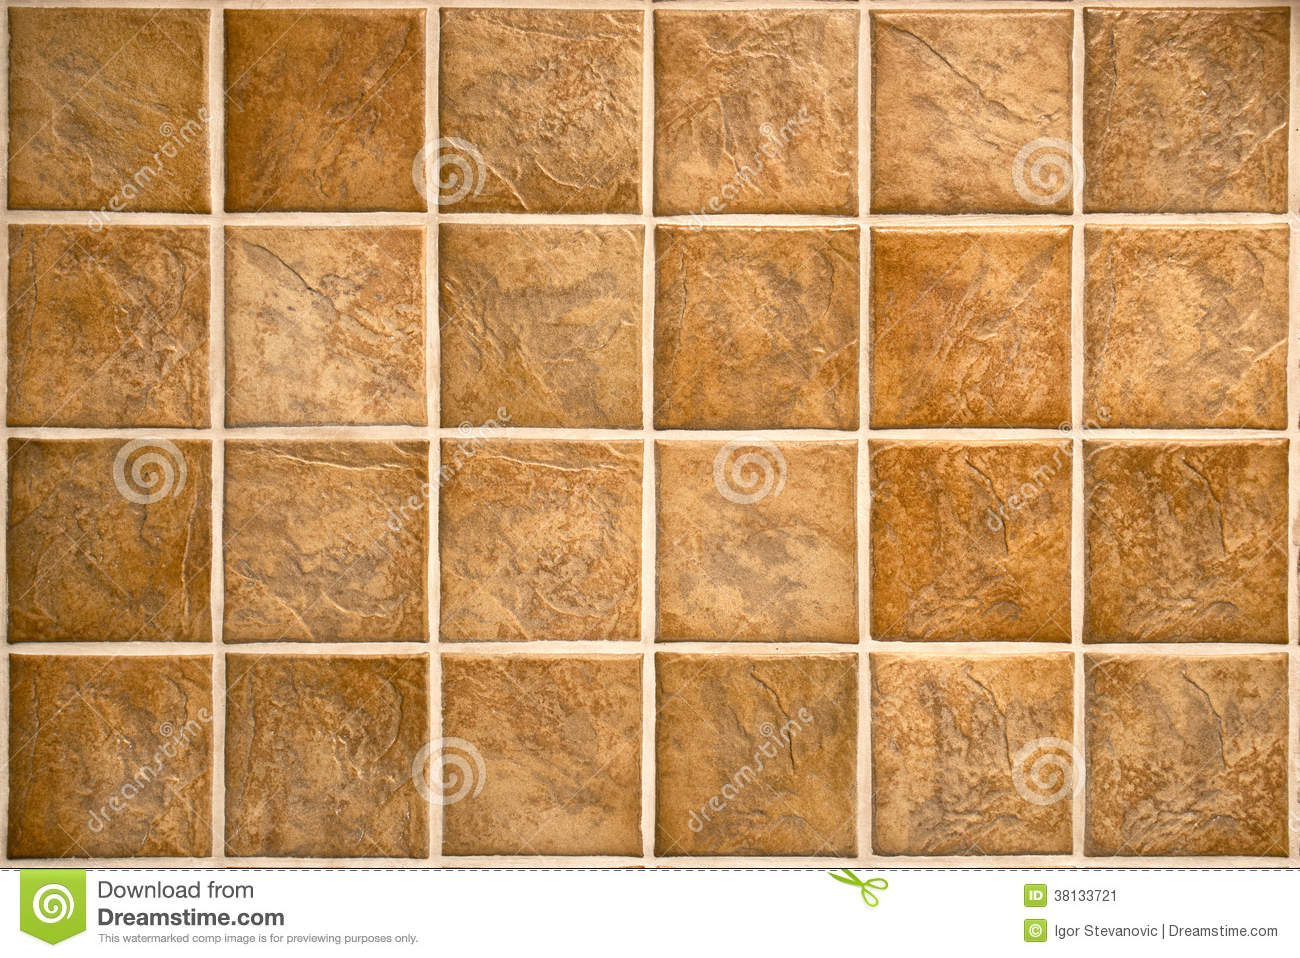 Beige mosaic ceramic tiles for wall or floor stock image image of beige mosaic ceramic tiles for wall or floor dailygadgetfo Images